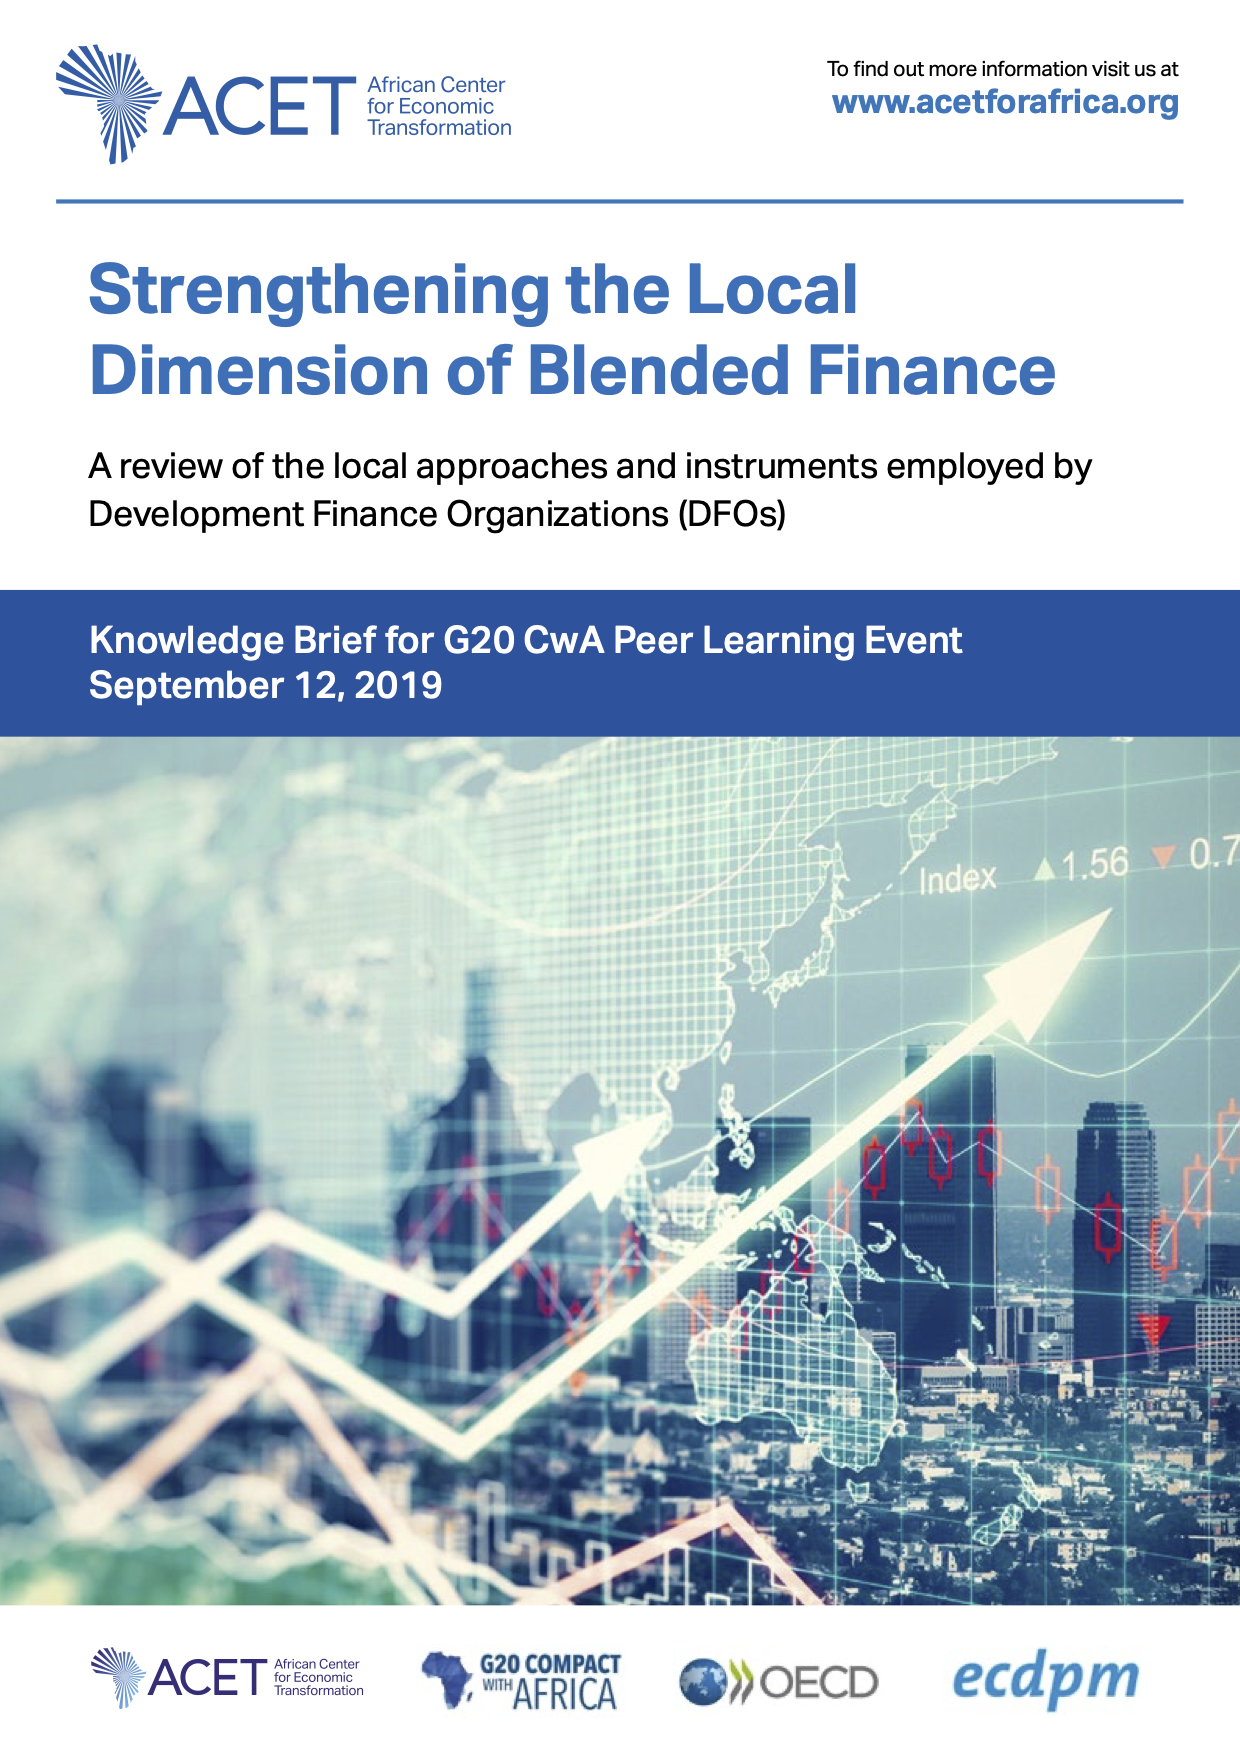 Strengthening the Local Dimension of Blended Finance